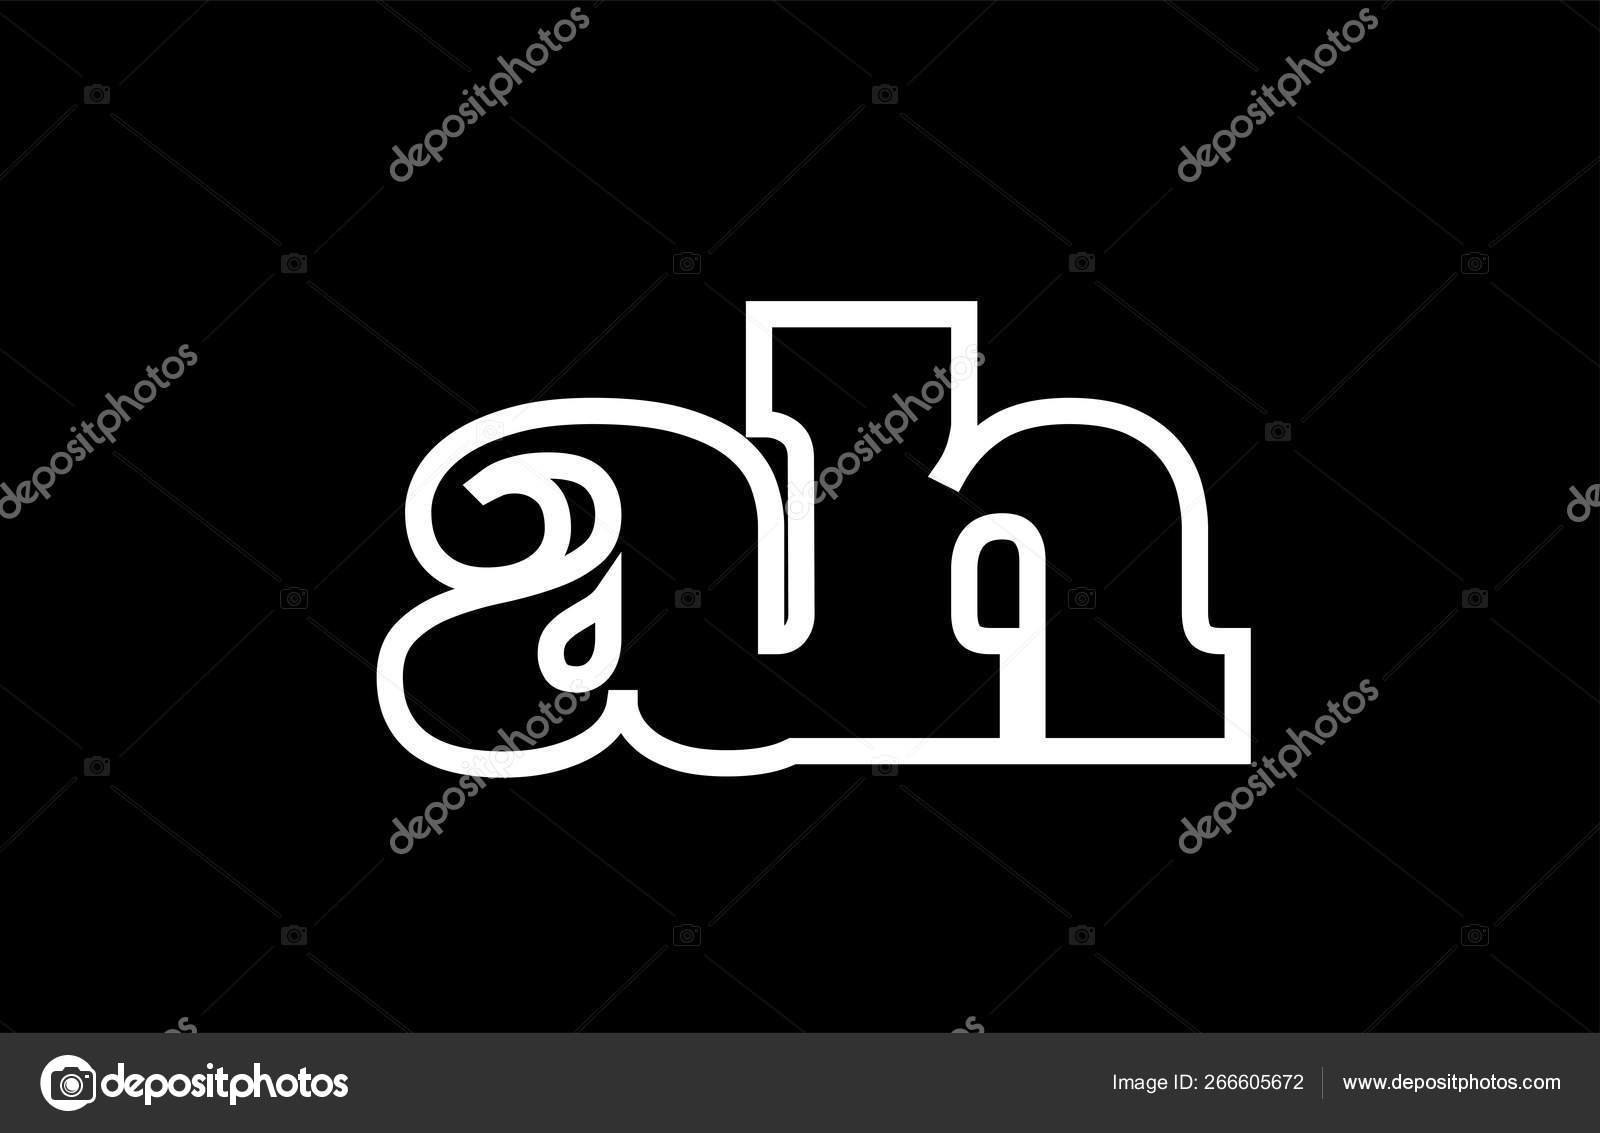 Connected ah a h black and white alphabet letter combination